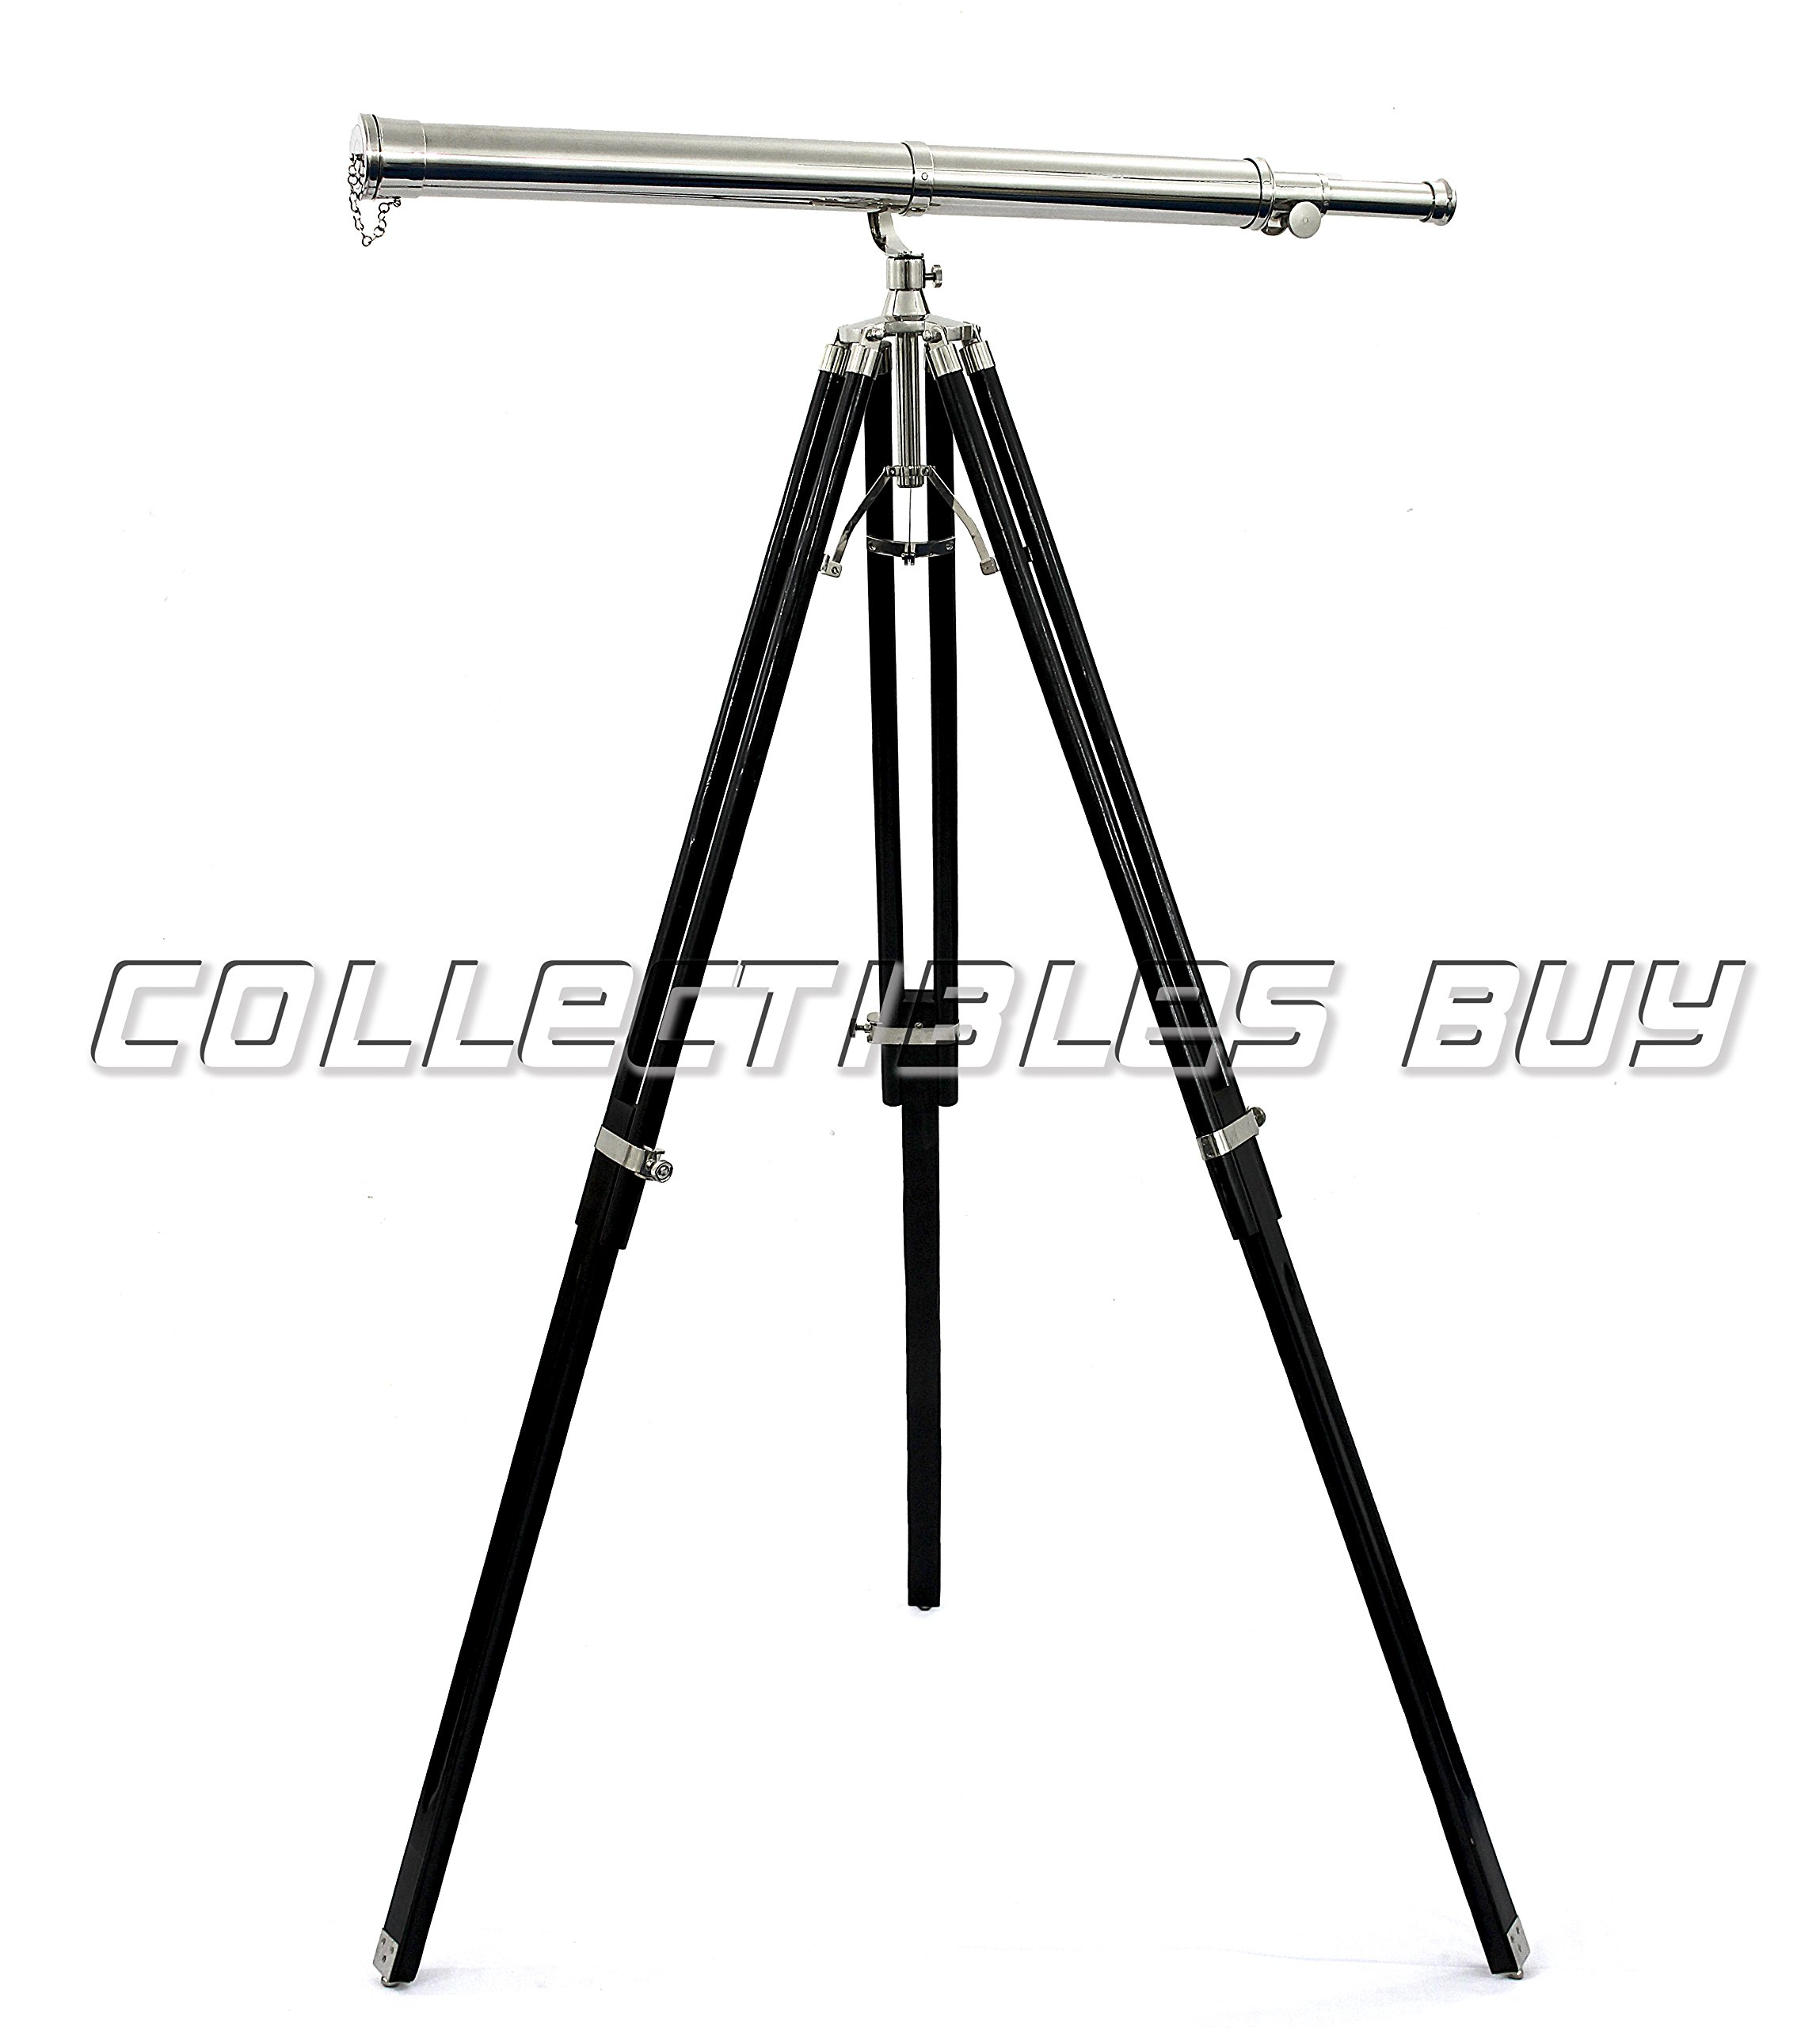 Vintage Nickel Finish Brass Made Nautical Vintage Telescopes Black Tripod Best of Collectibles